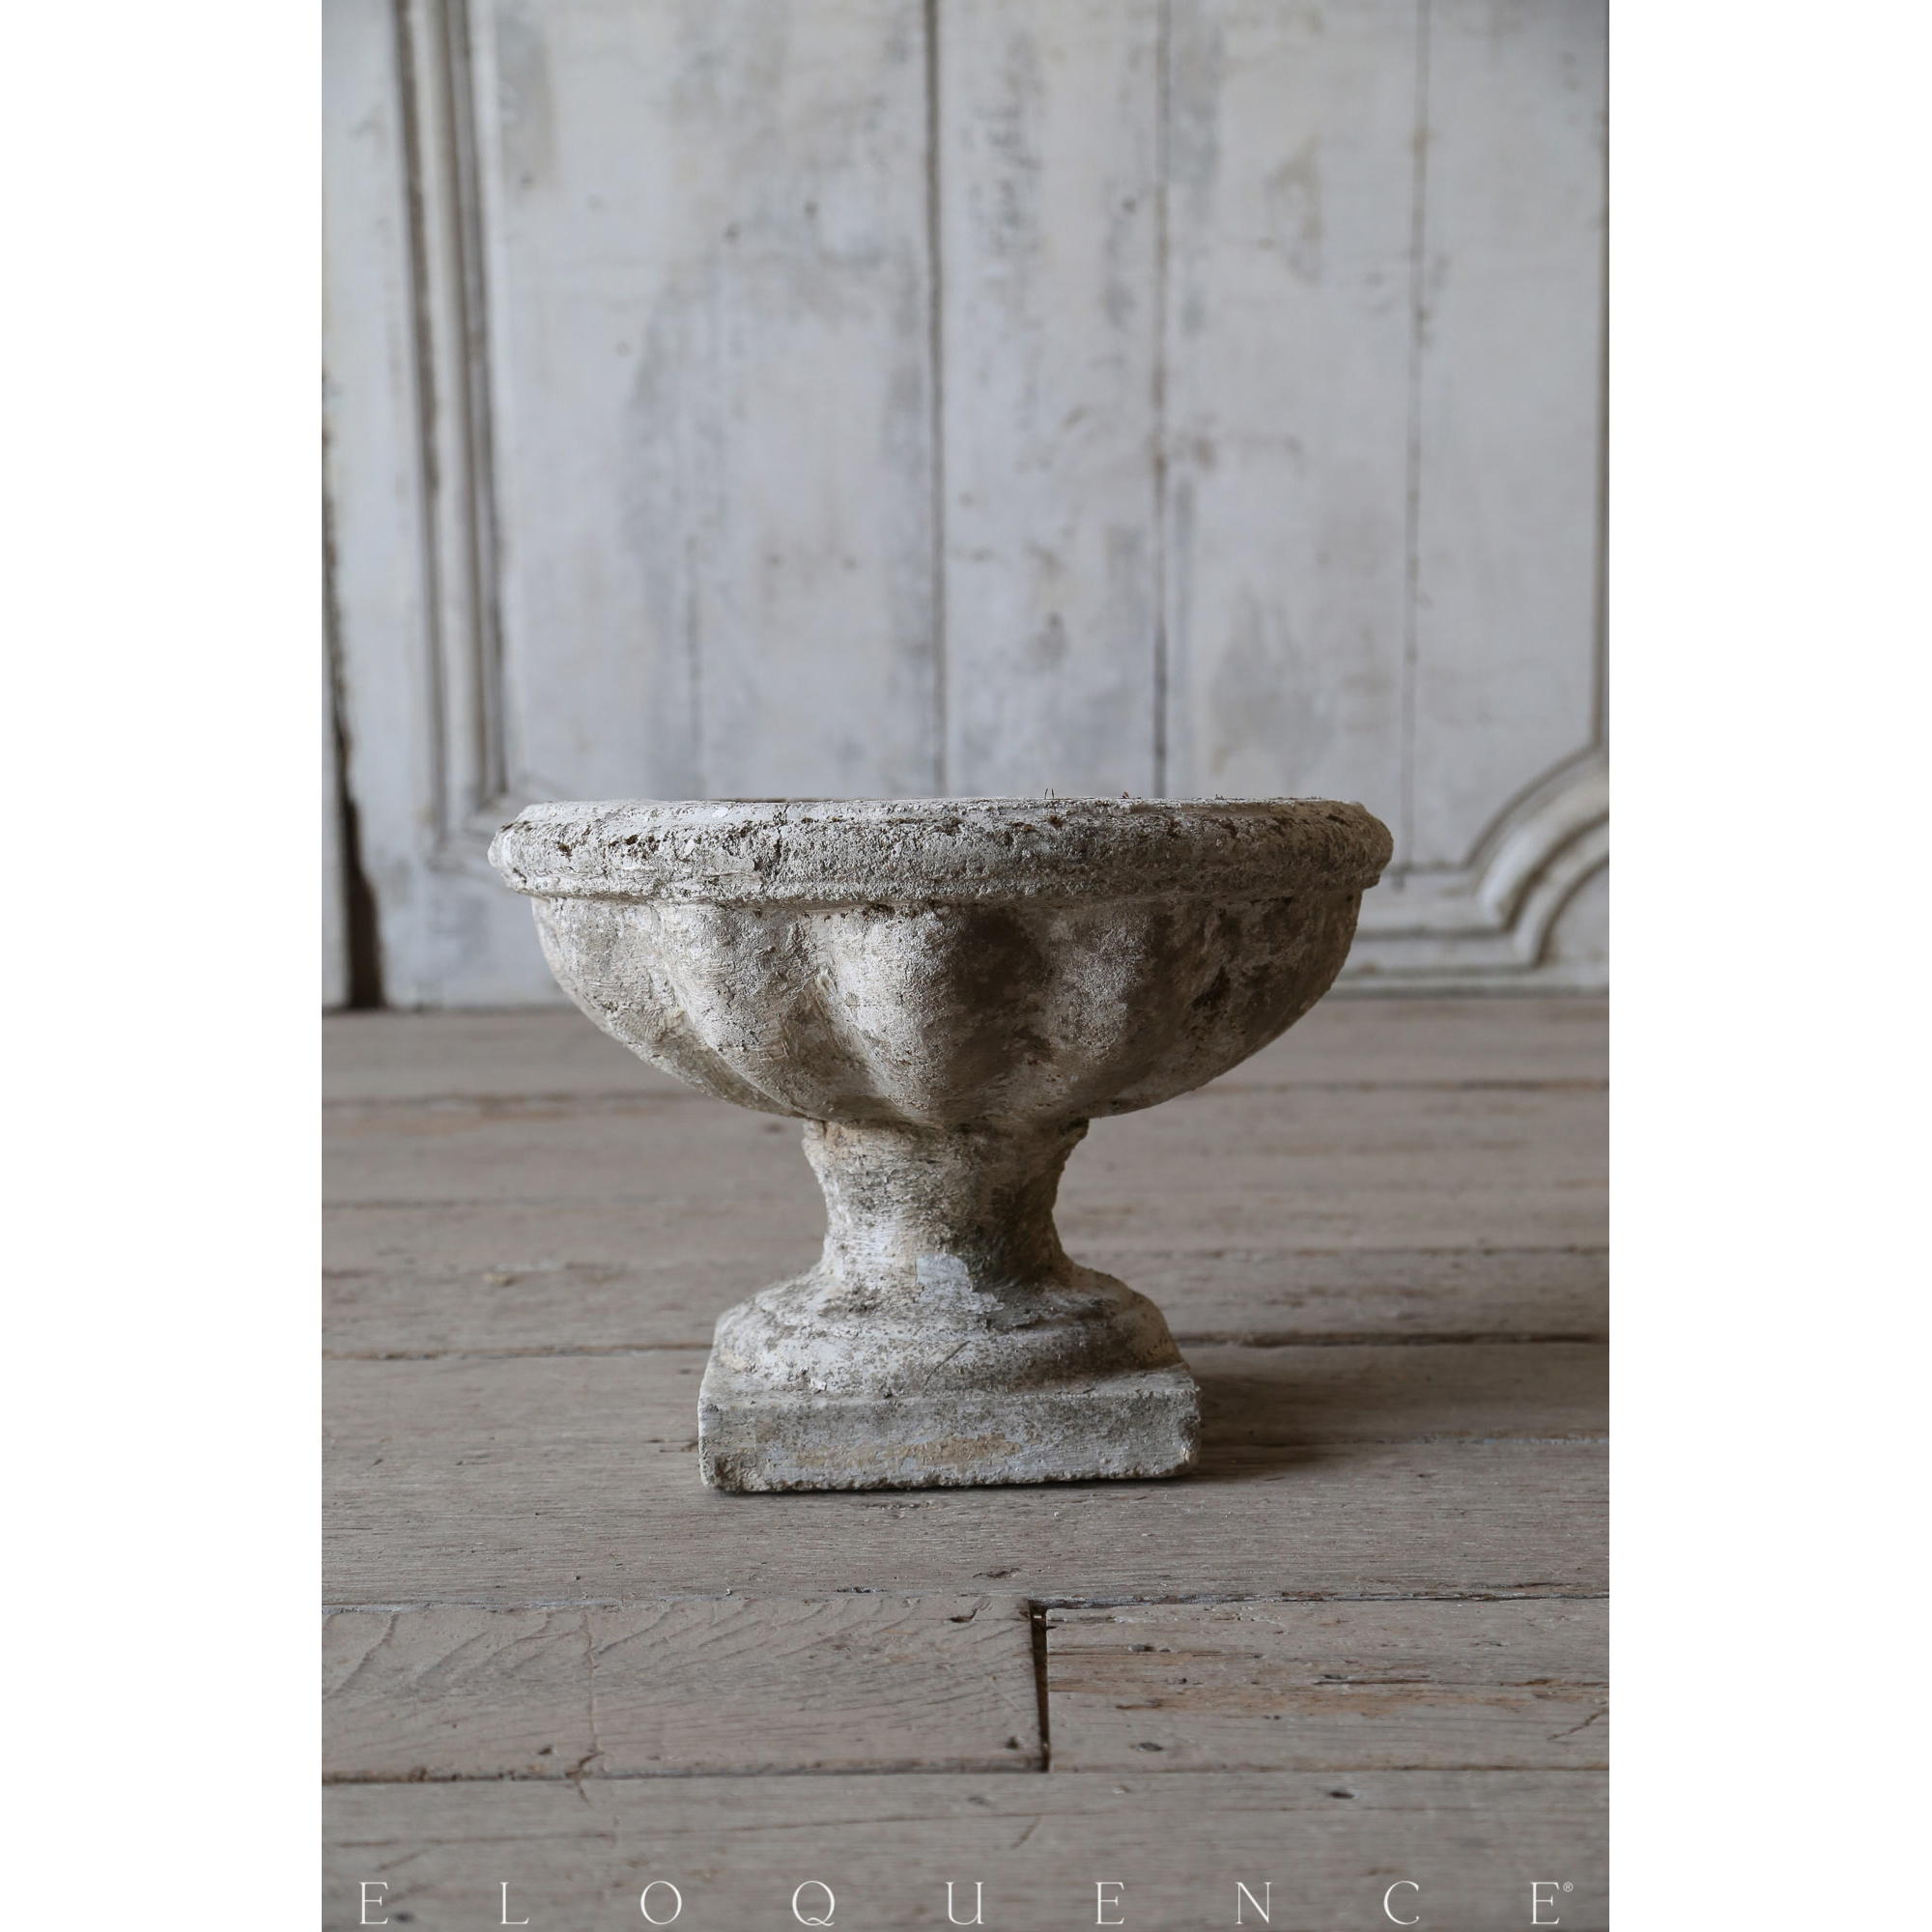 Eloquence® Antique French Terra Cotta Garden Urn